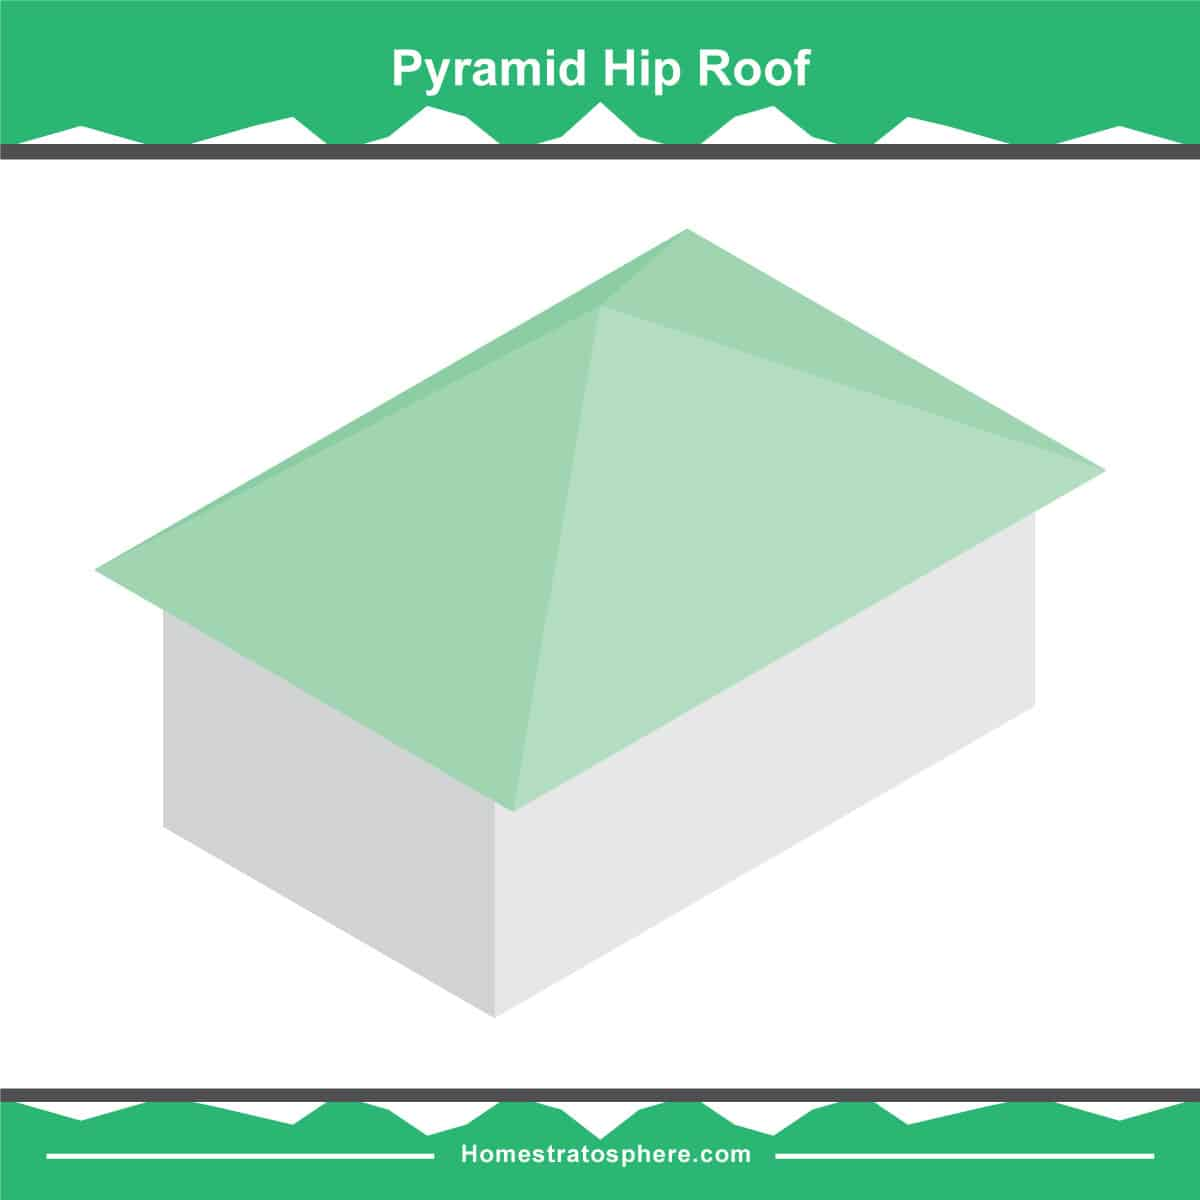 Pyramid hip roof diagram